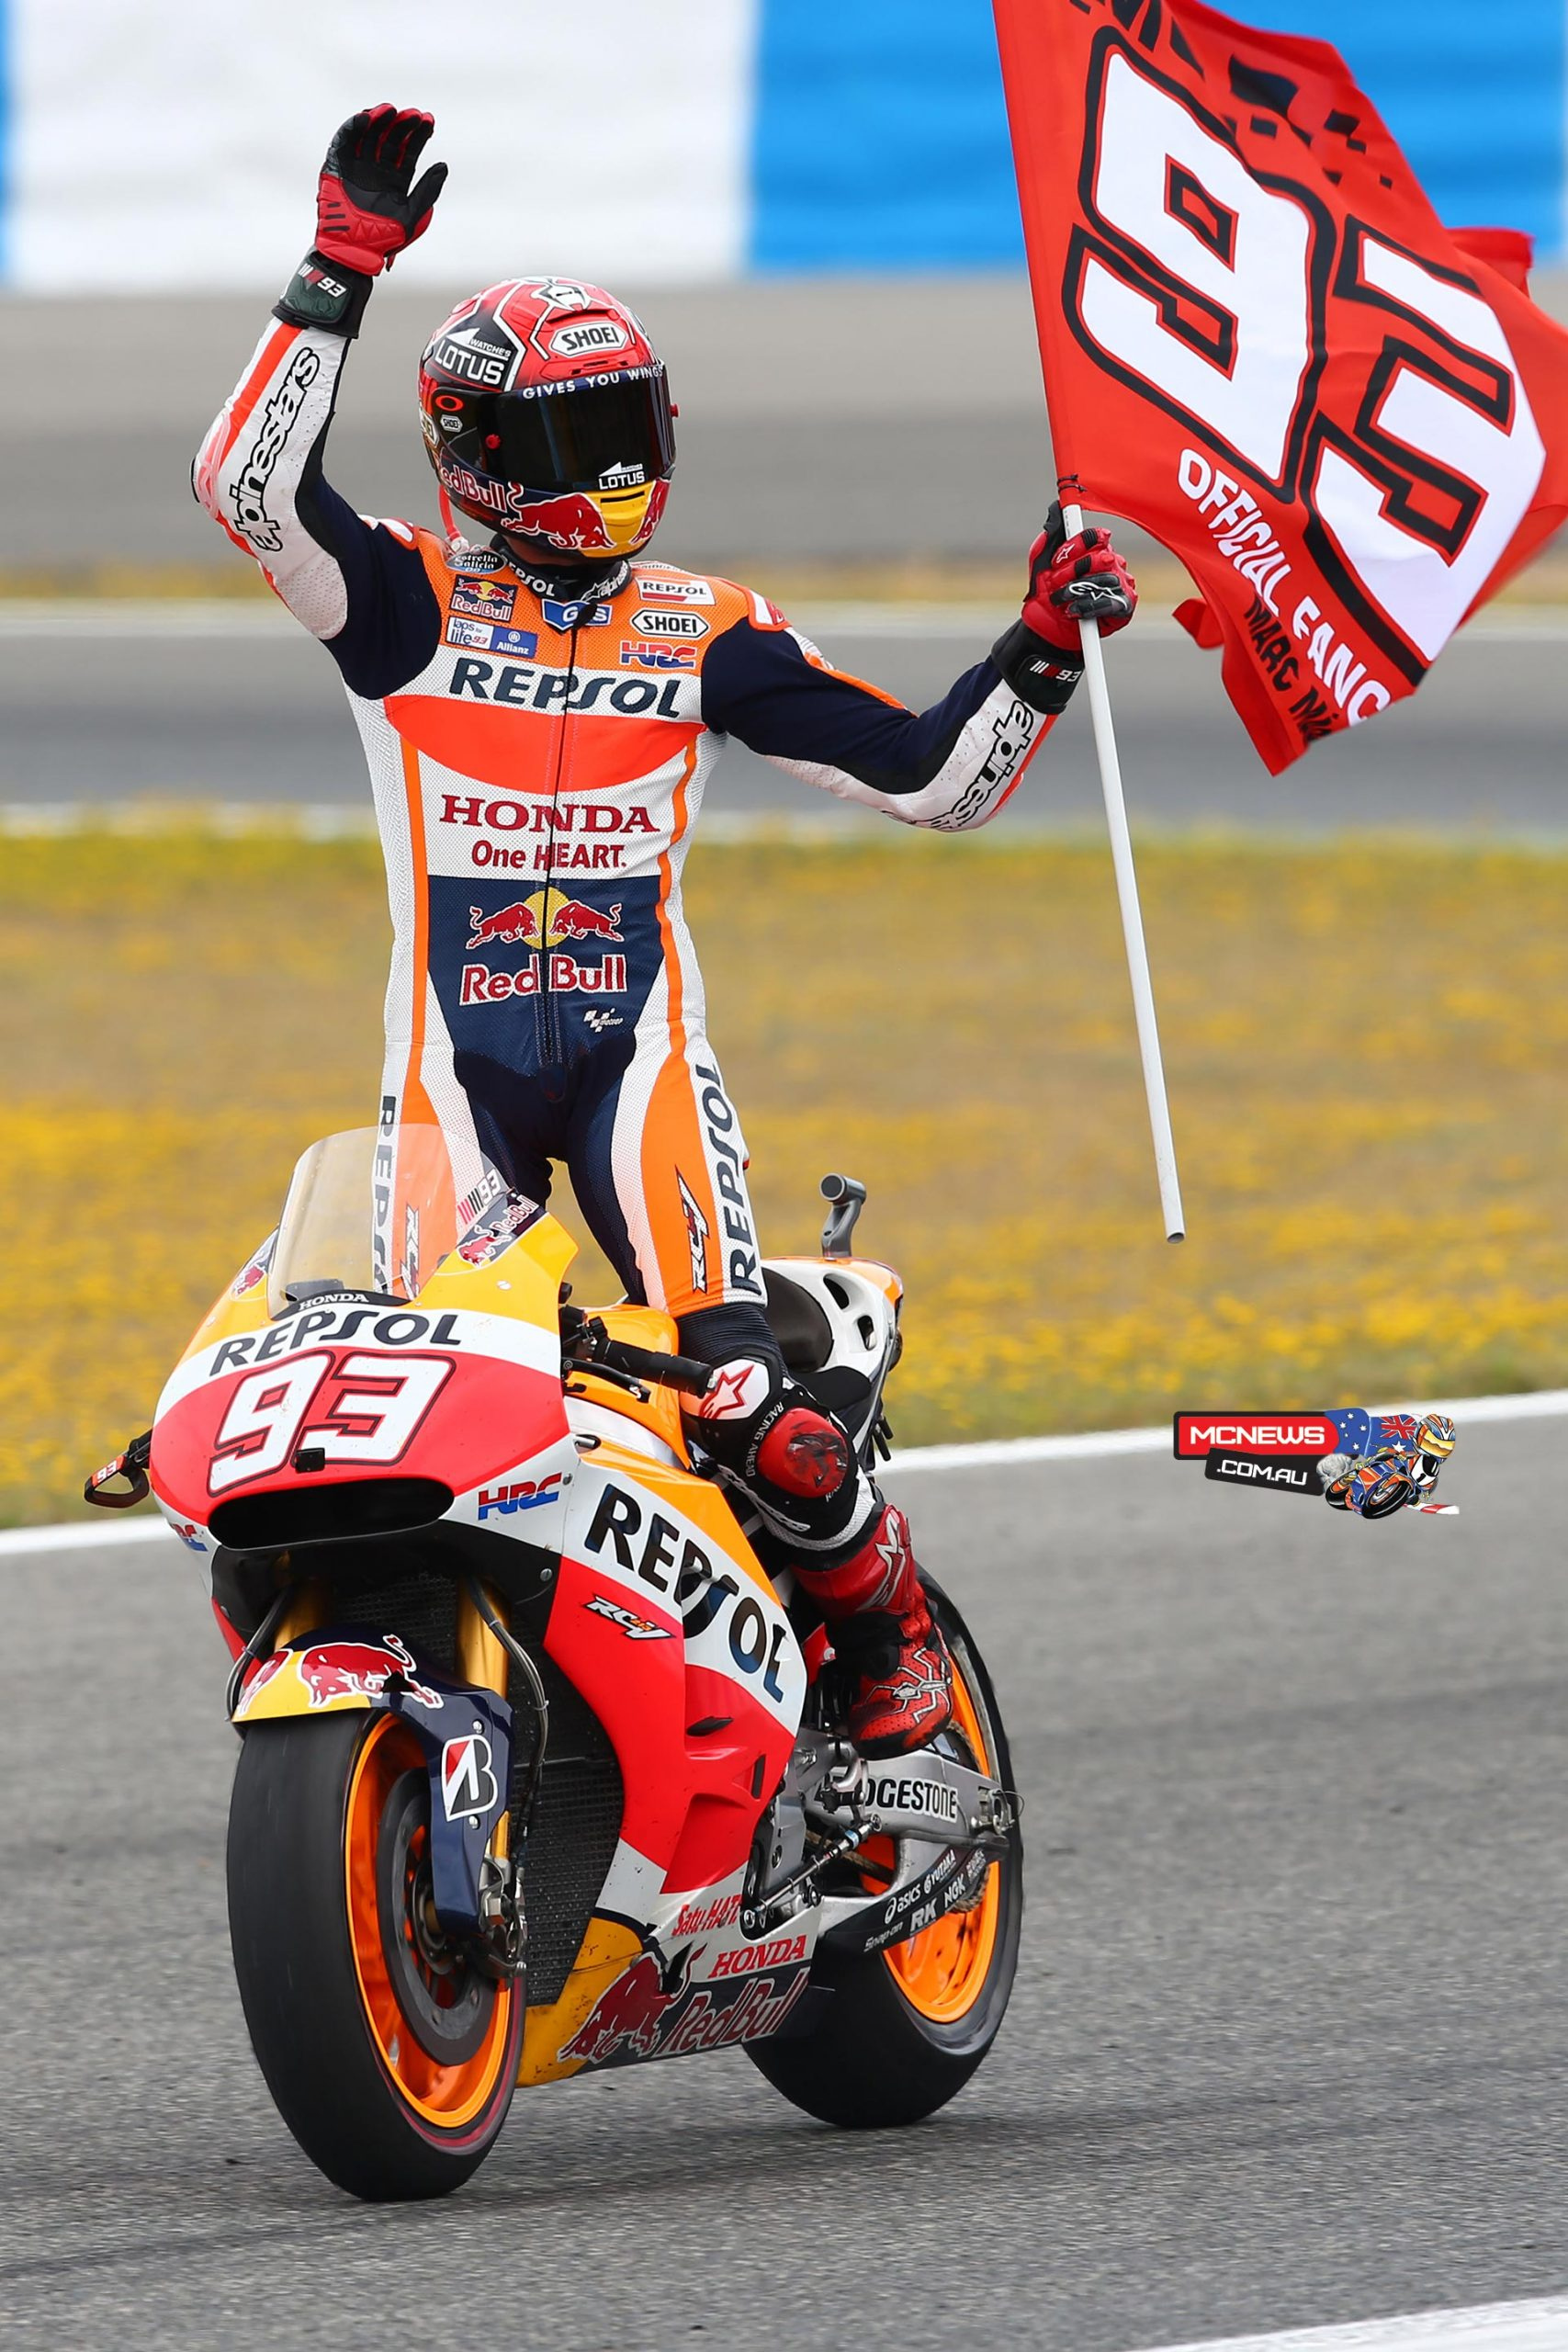 Stage 9 Moto GP 2015: Driver Marc Marquez finishes first at the Sachsenring